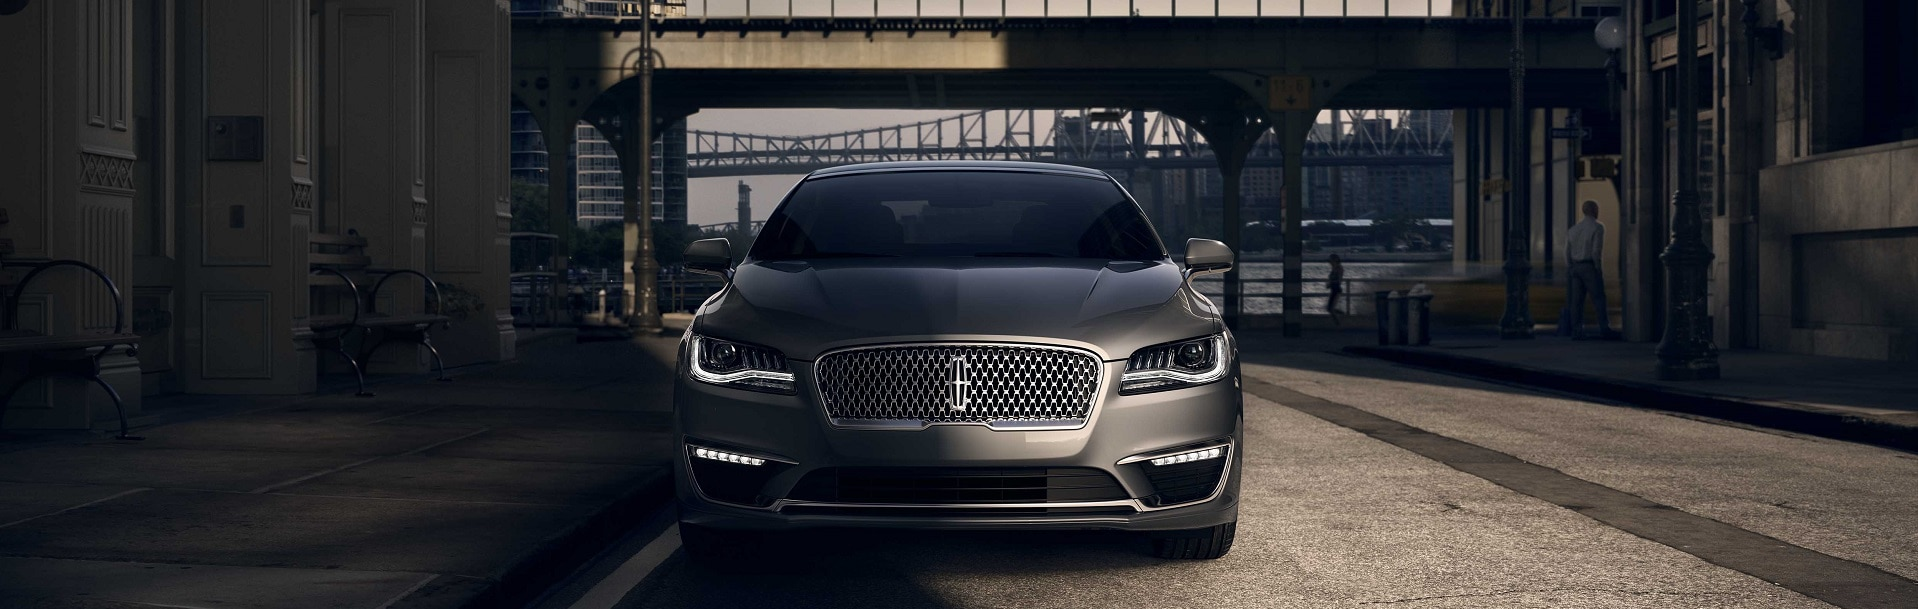 Compare Lincoln MKZ Vs Audi A Lincoln Of Mayfield Serving - Audi a4 comparable cars